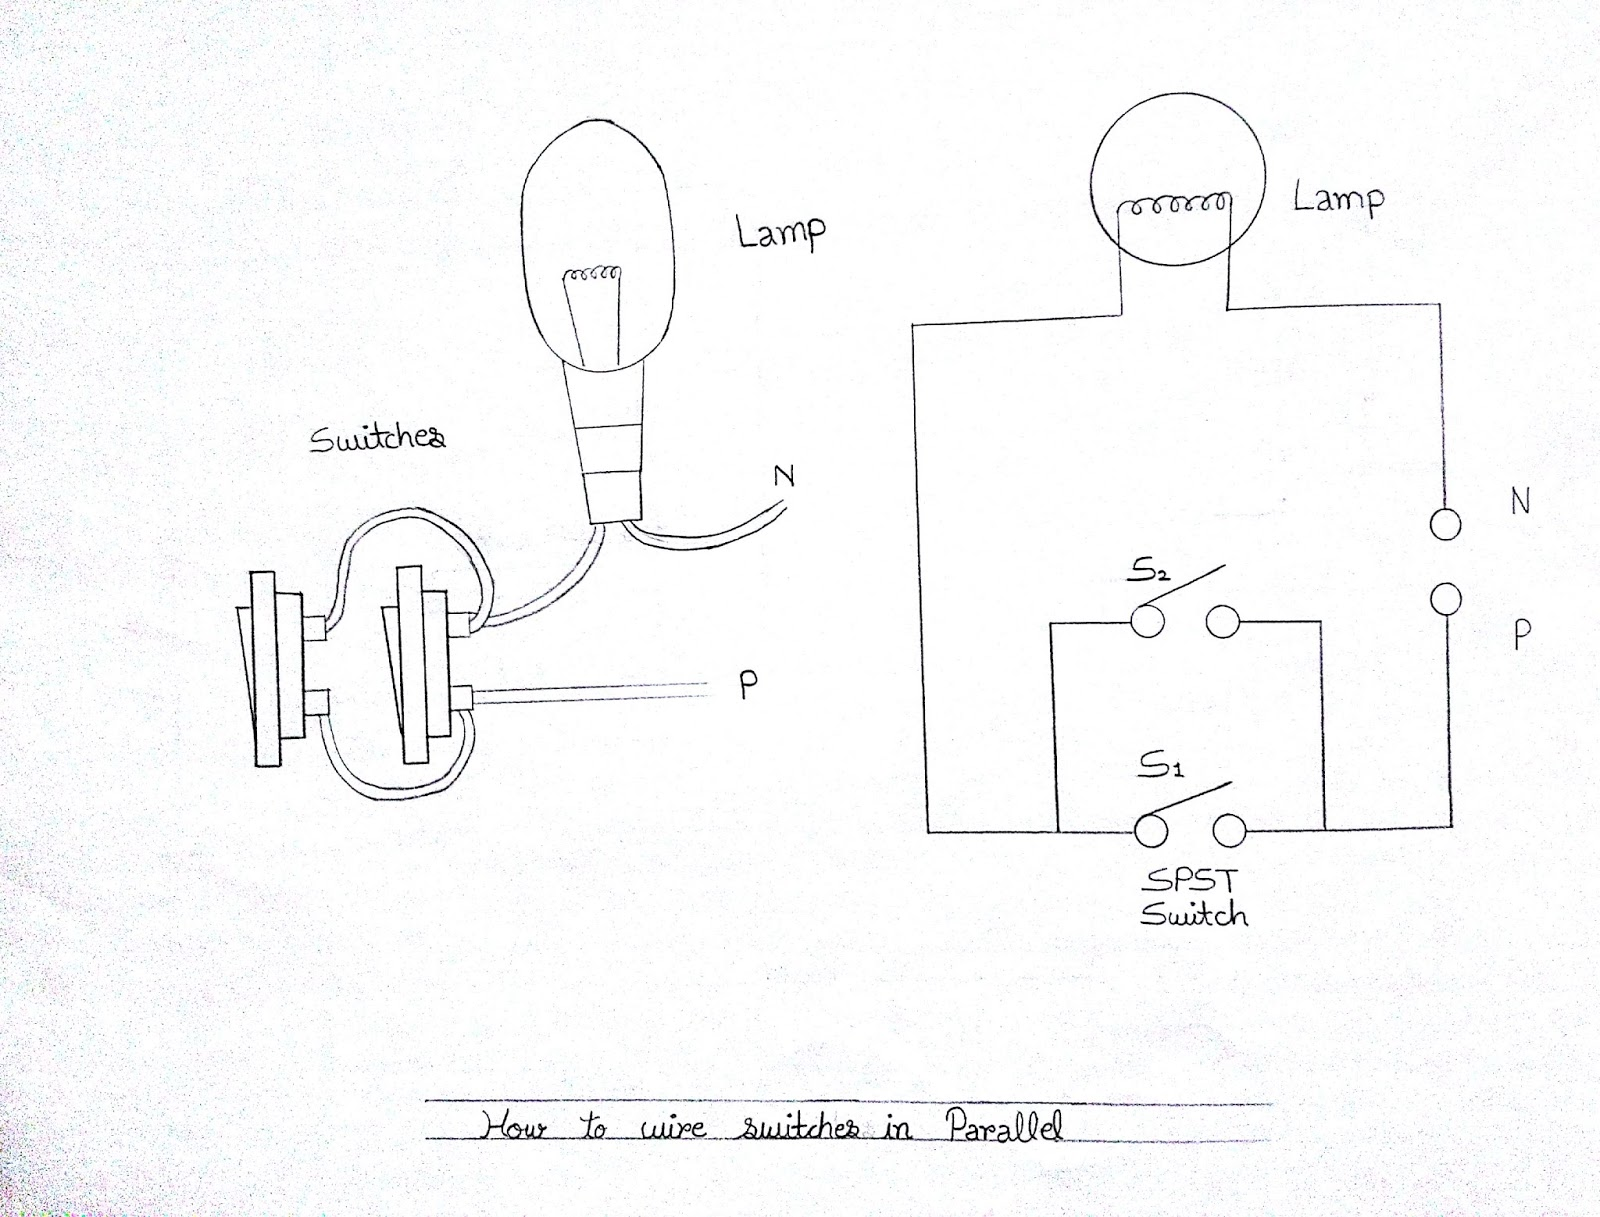 Learn Electrician Electrical Wiring Diagrams of Switches Sockets